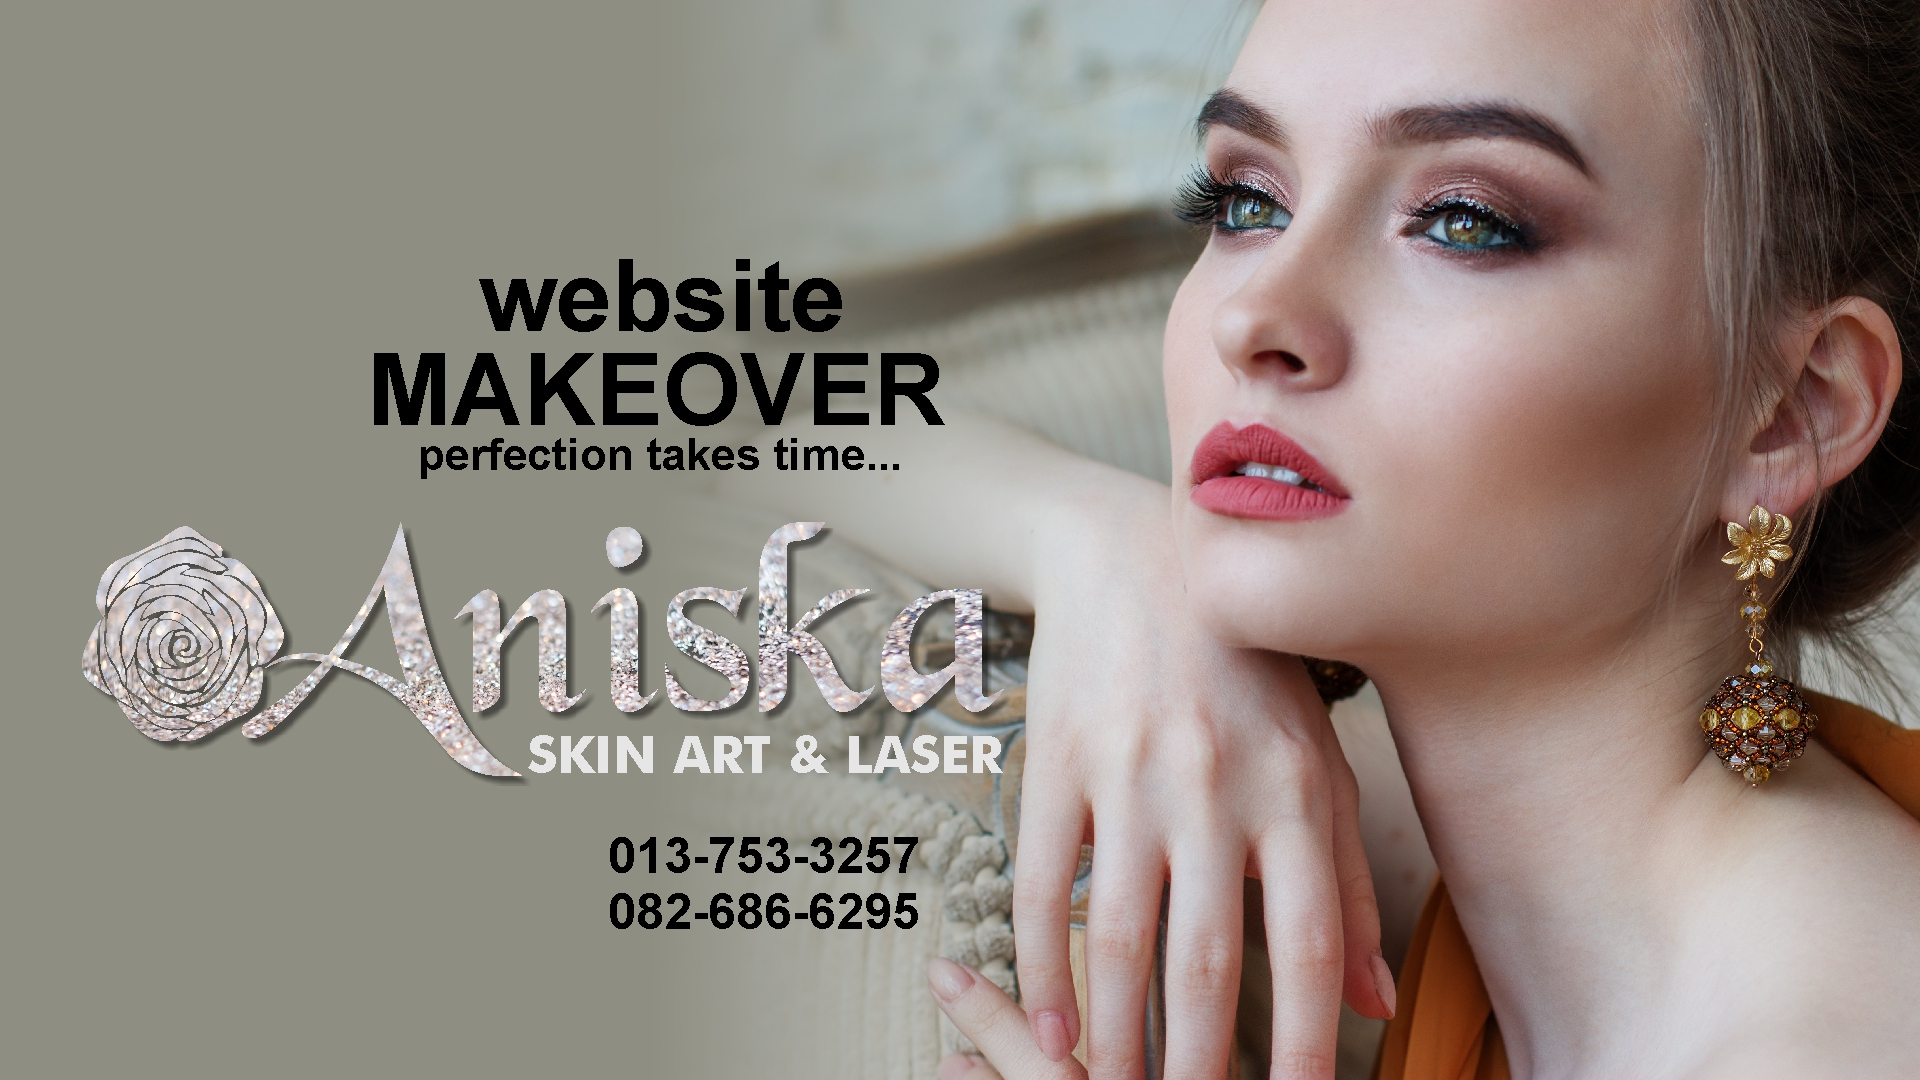 aniska website makeover